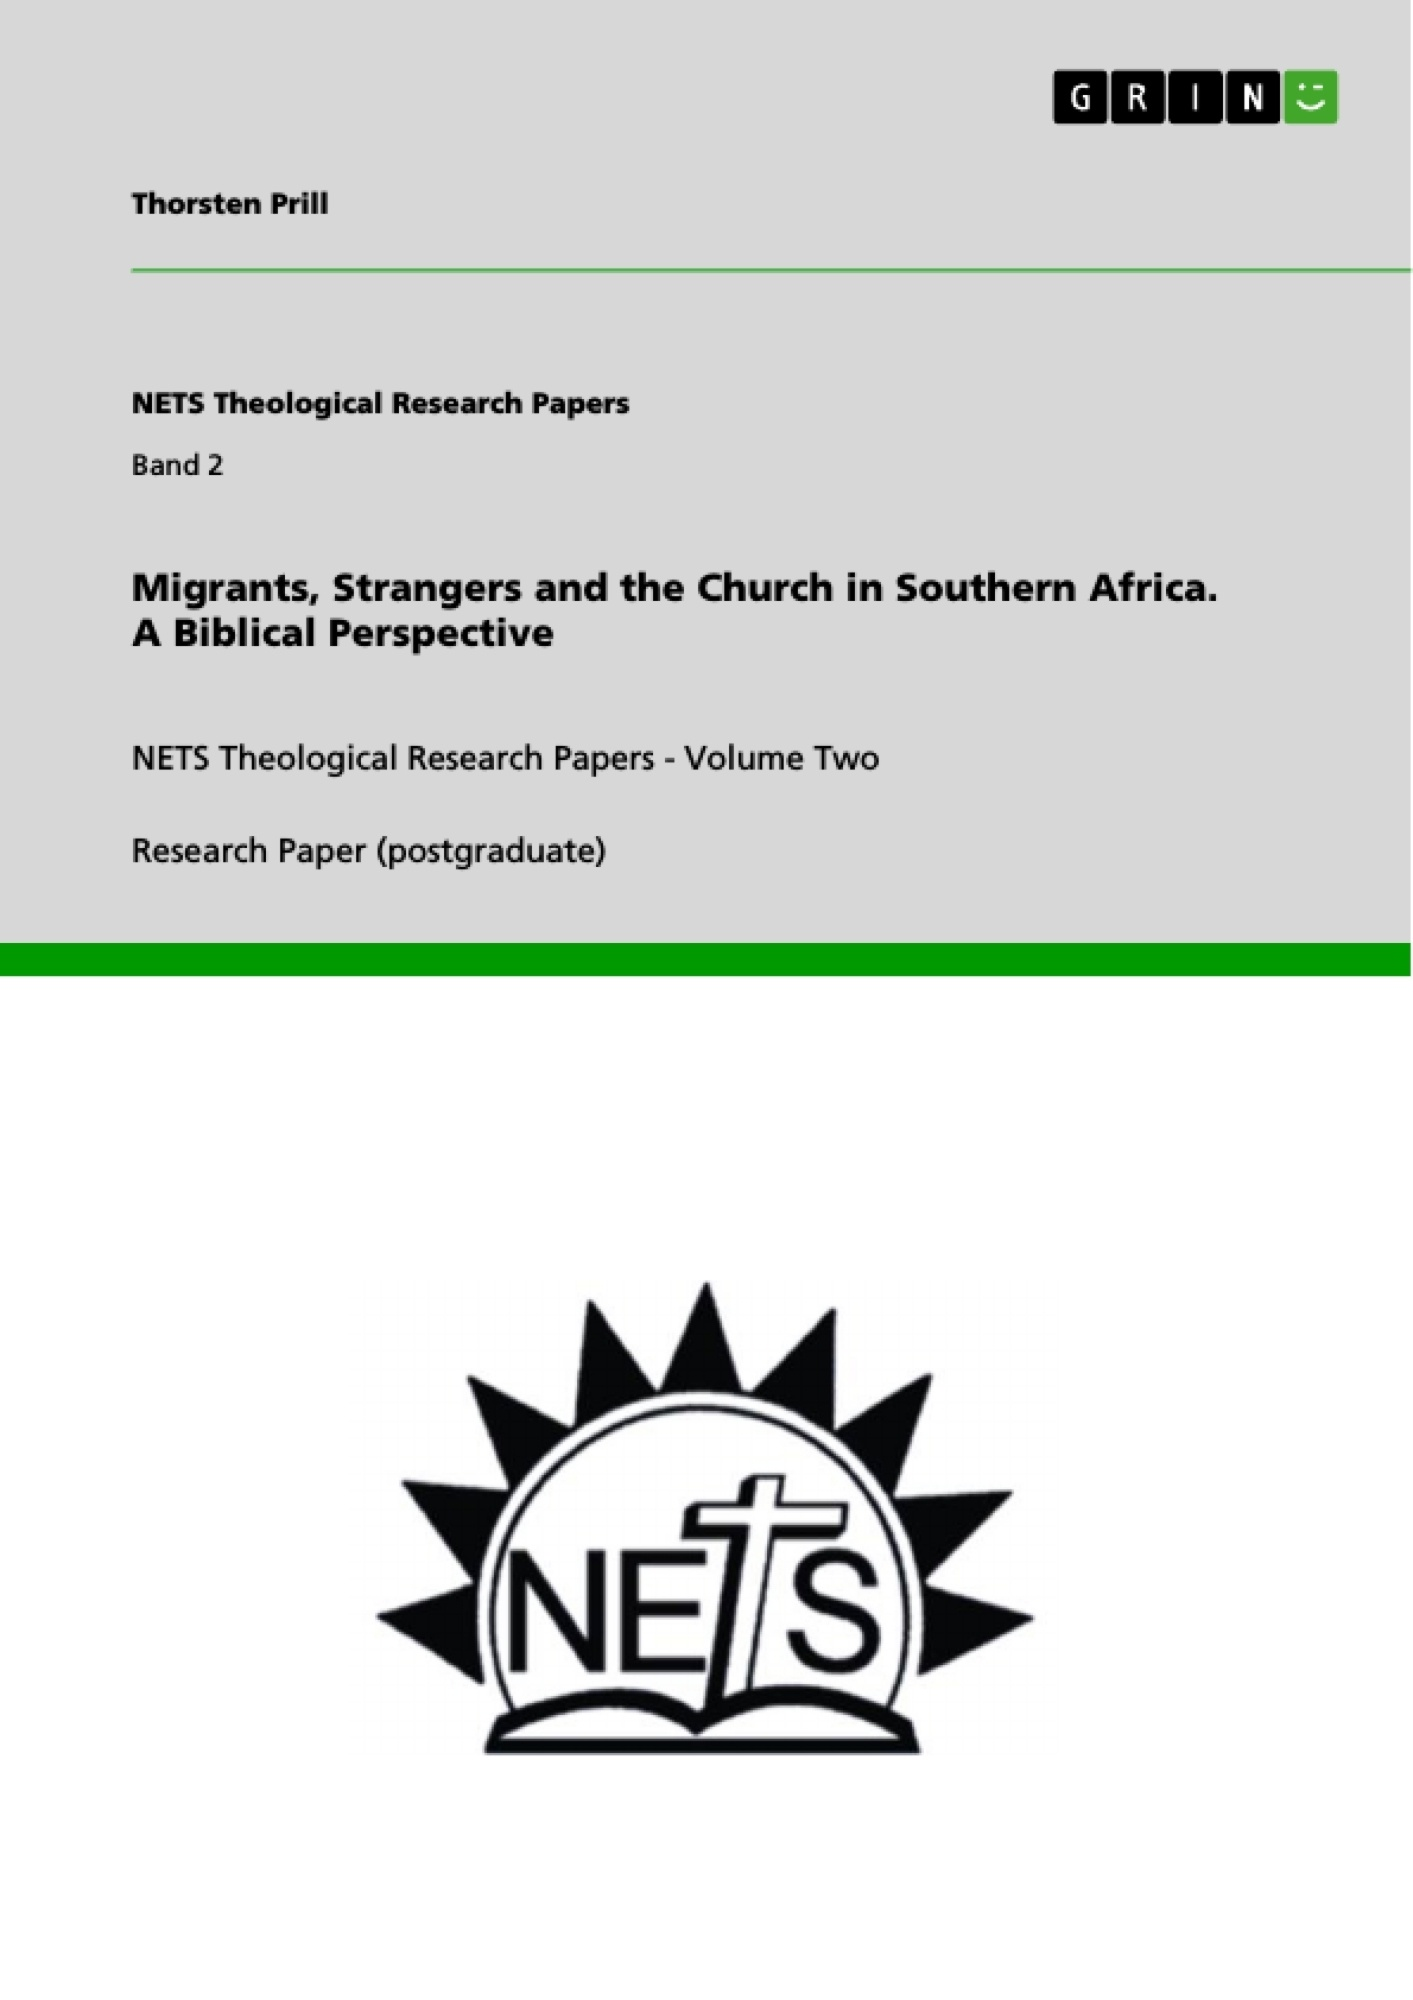 Title: Migrants, Strangers and the Church in Southern Africa. A Biblical Perspective